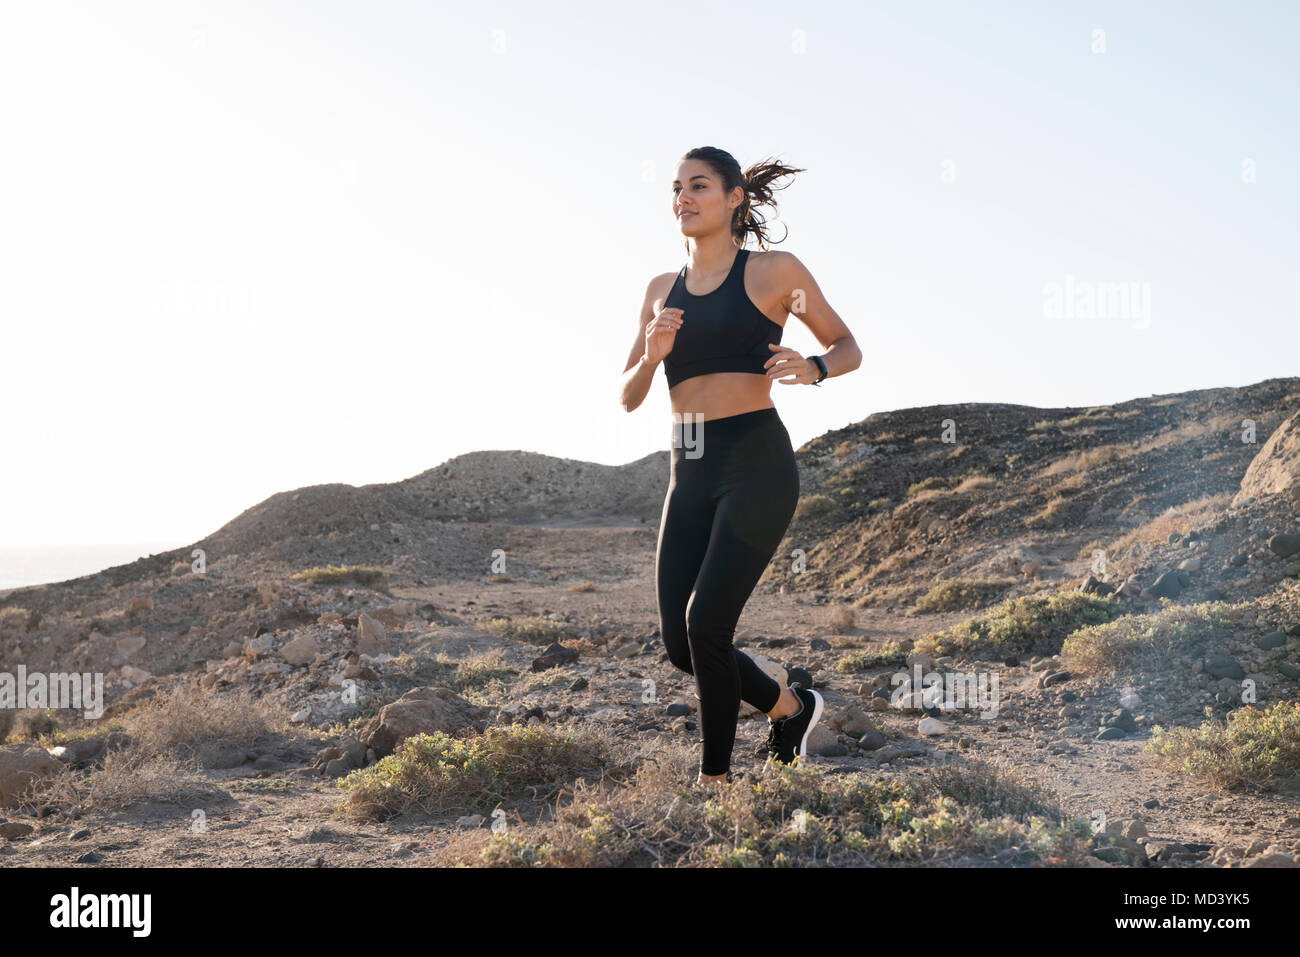 Young female runner running on dirt track in arid landscape, Las Palmas, Canary Islands, Spain - Stock Image